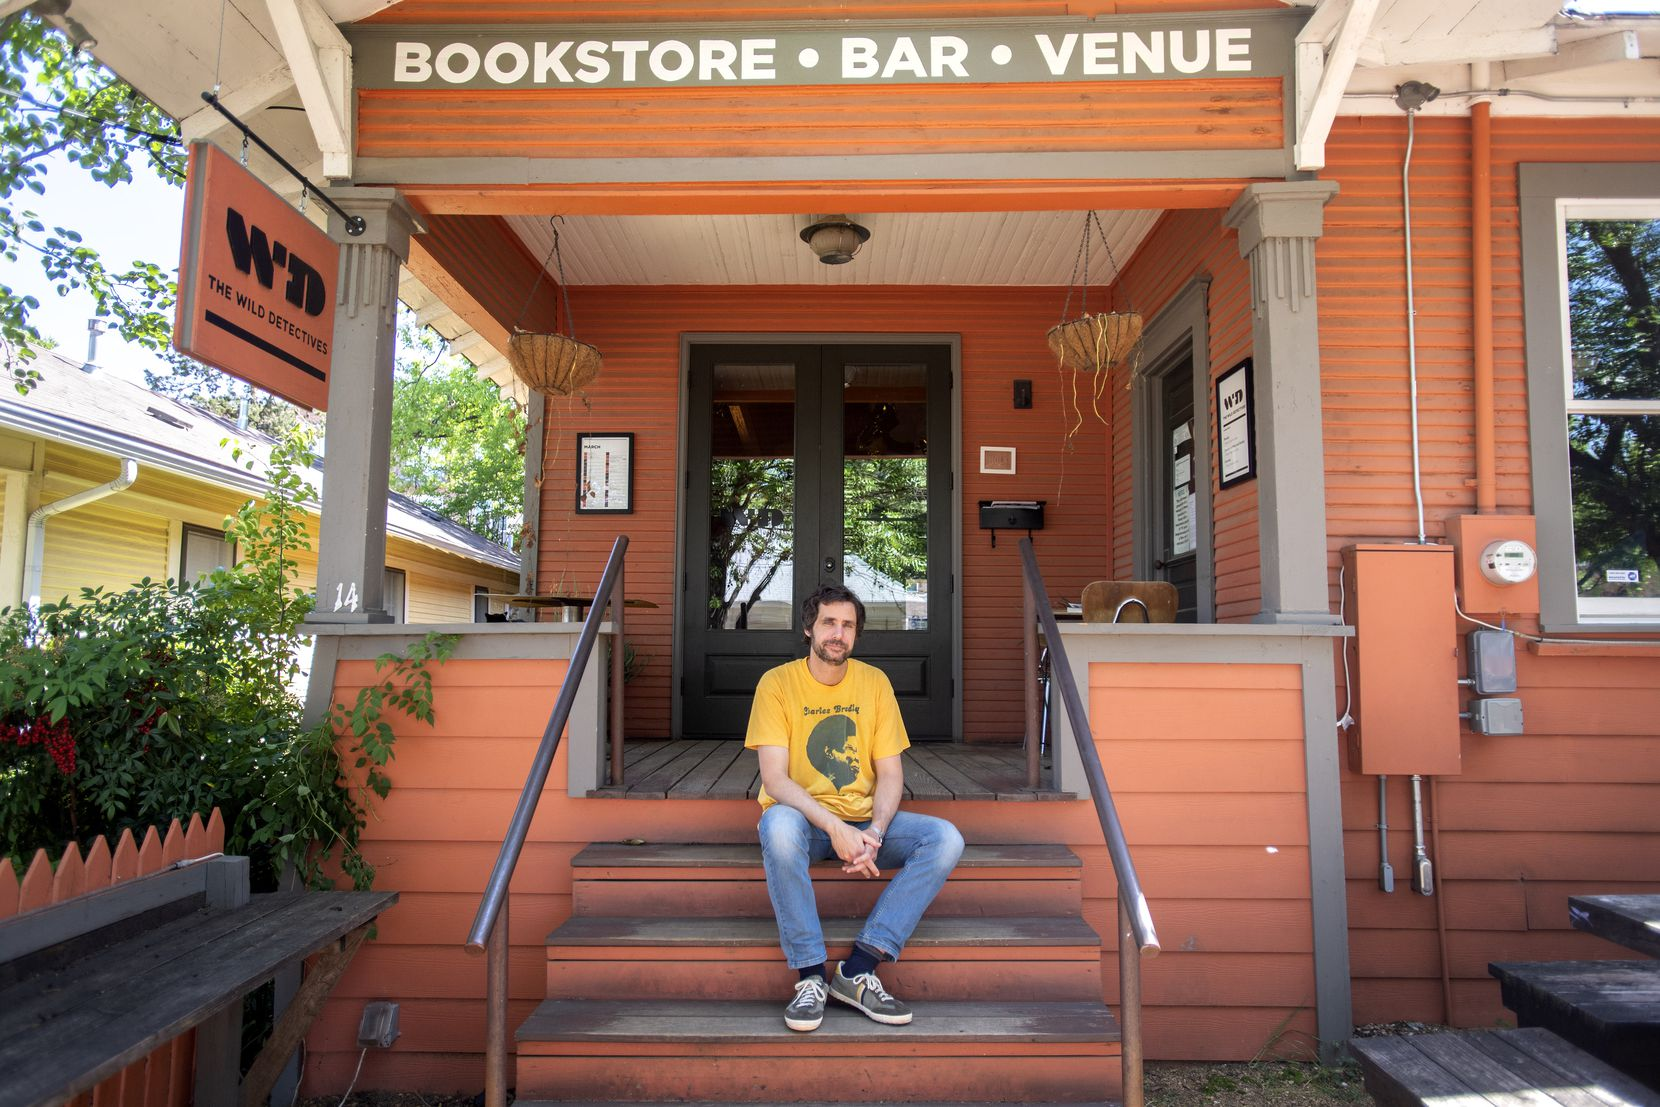 Javier Garcia del Moral, owner of The Wild Detectives bookstore and bar, poses for a portrait outside his quiet shop, Wednesday, April 29, 2020 in the Bishop Arts District in Dallas.